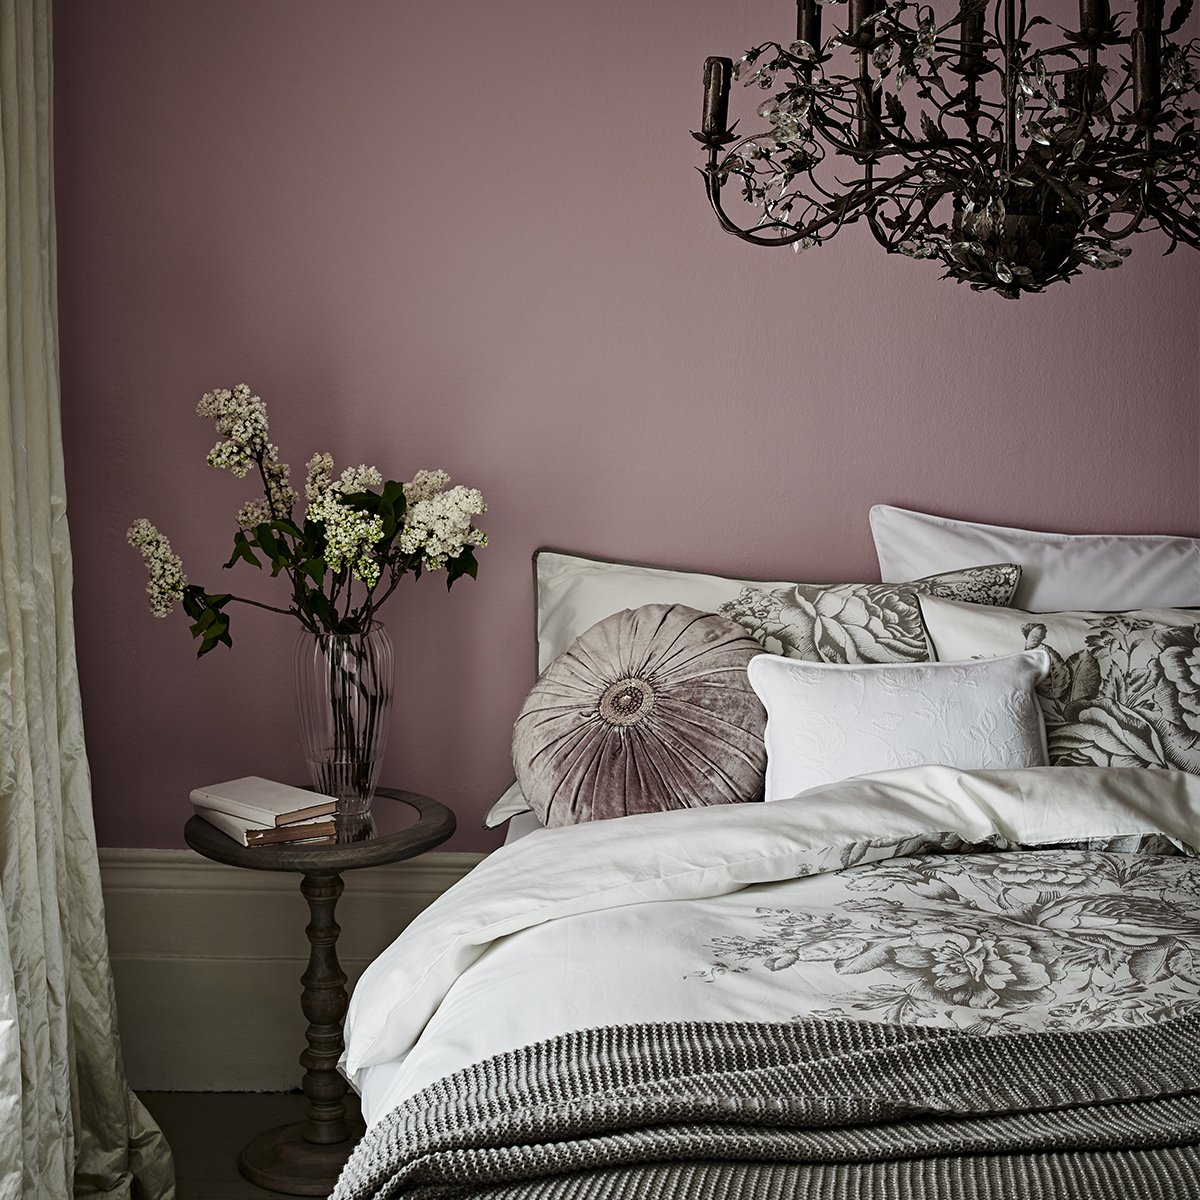 Sainsburys Bedroom Furniture Sainsburys On Twitter Make Your Home More Majestic With Our